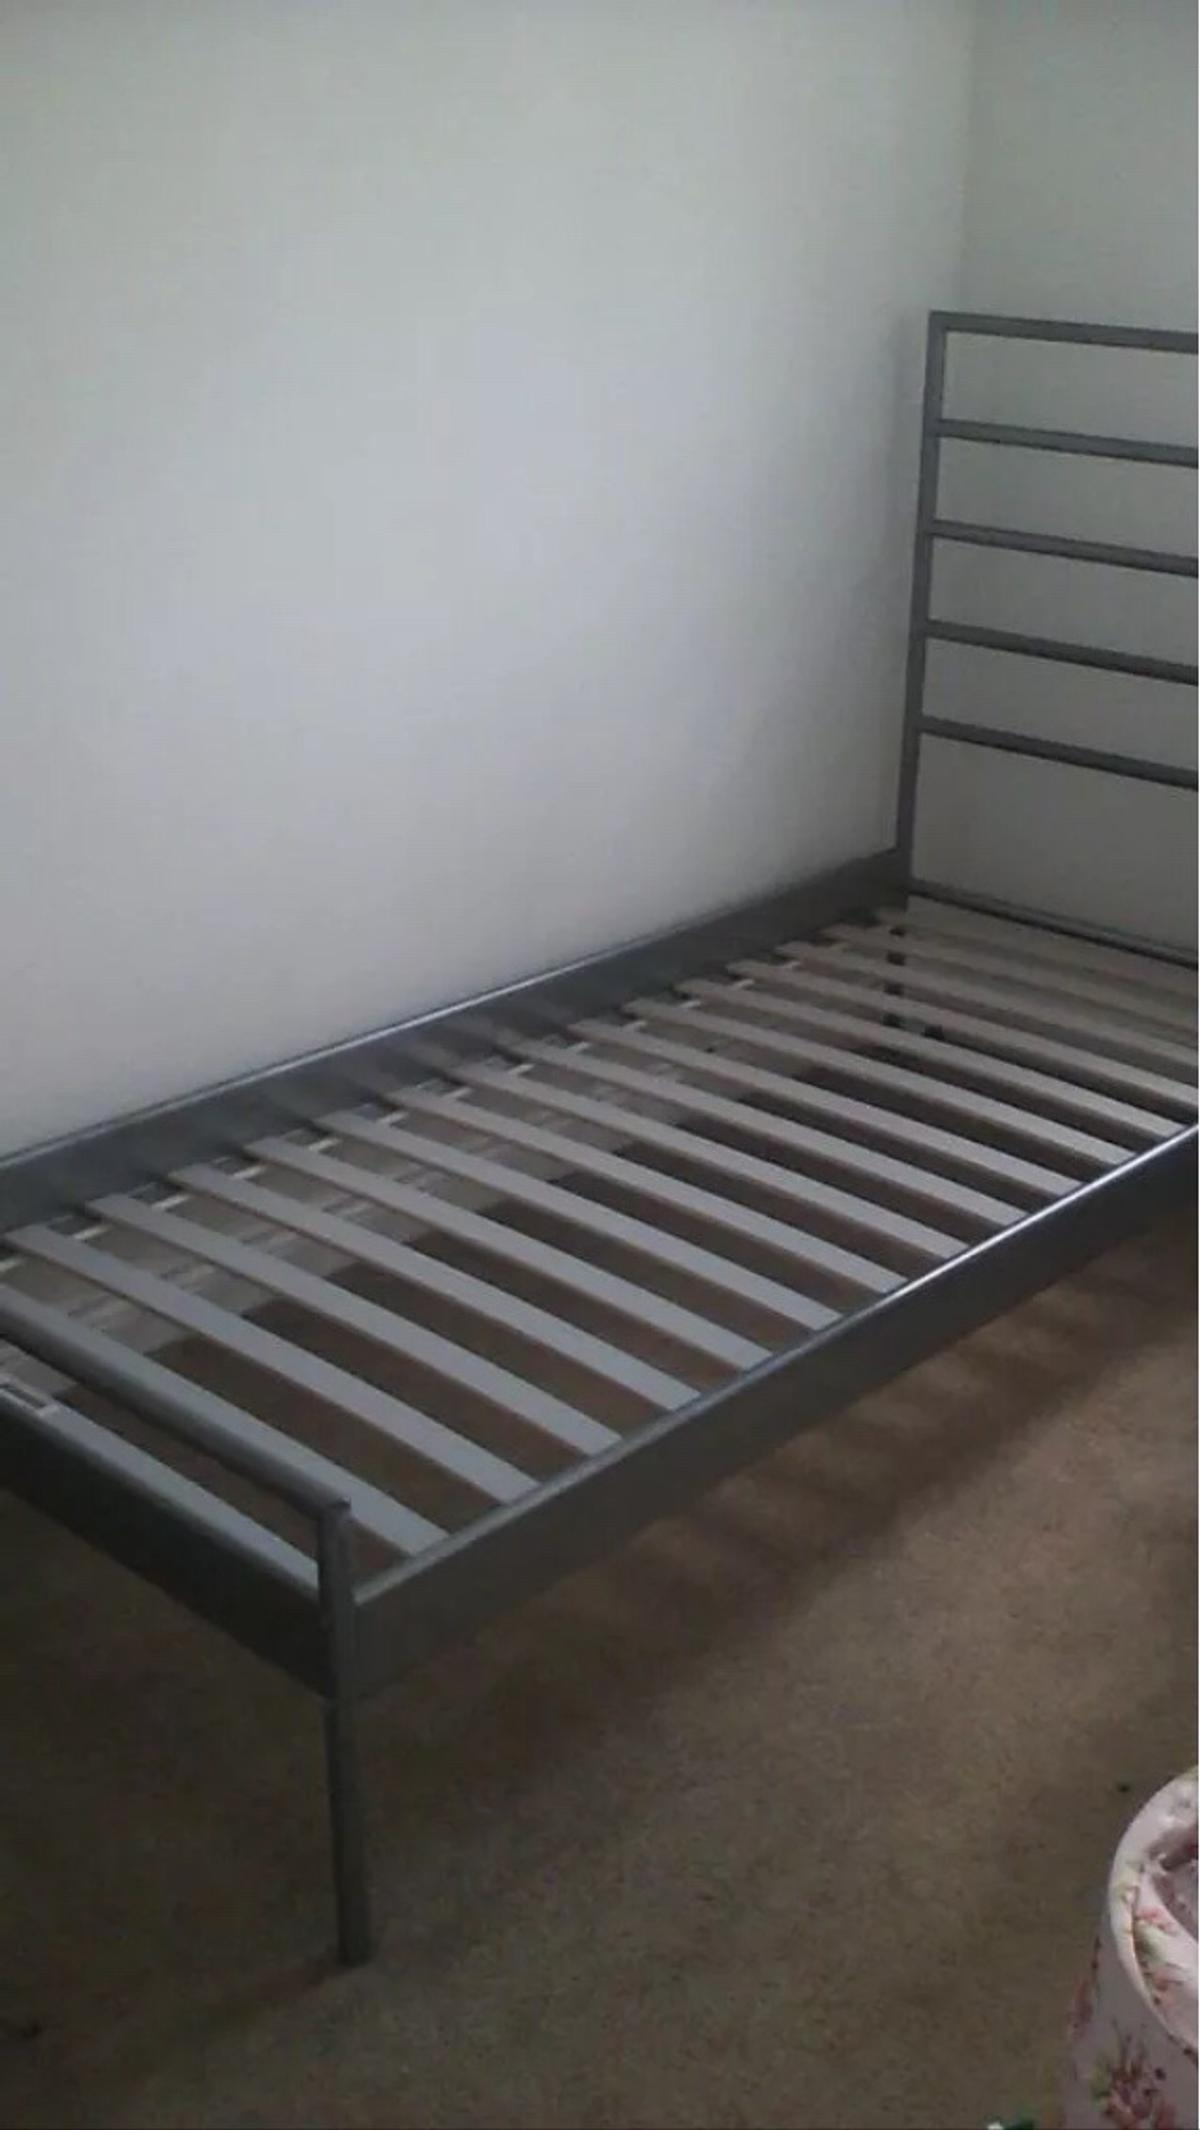 Ikea Single Bed Metal Frame And Slats In Ne24 Seaton For 20 00 For Sale Shpock